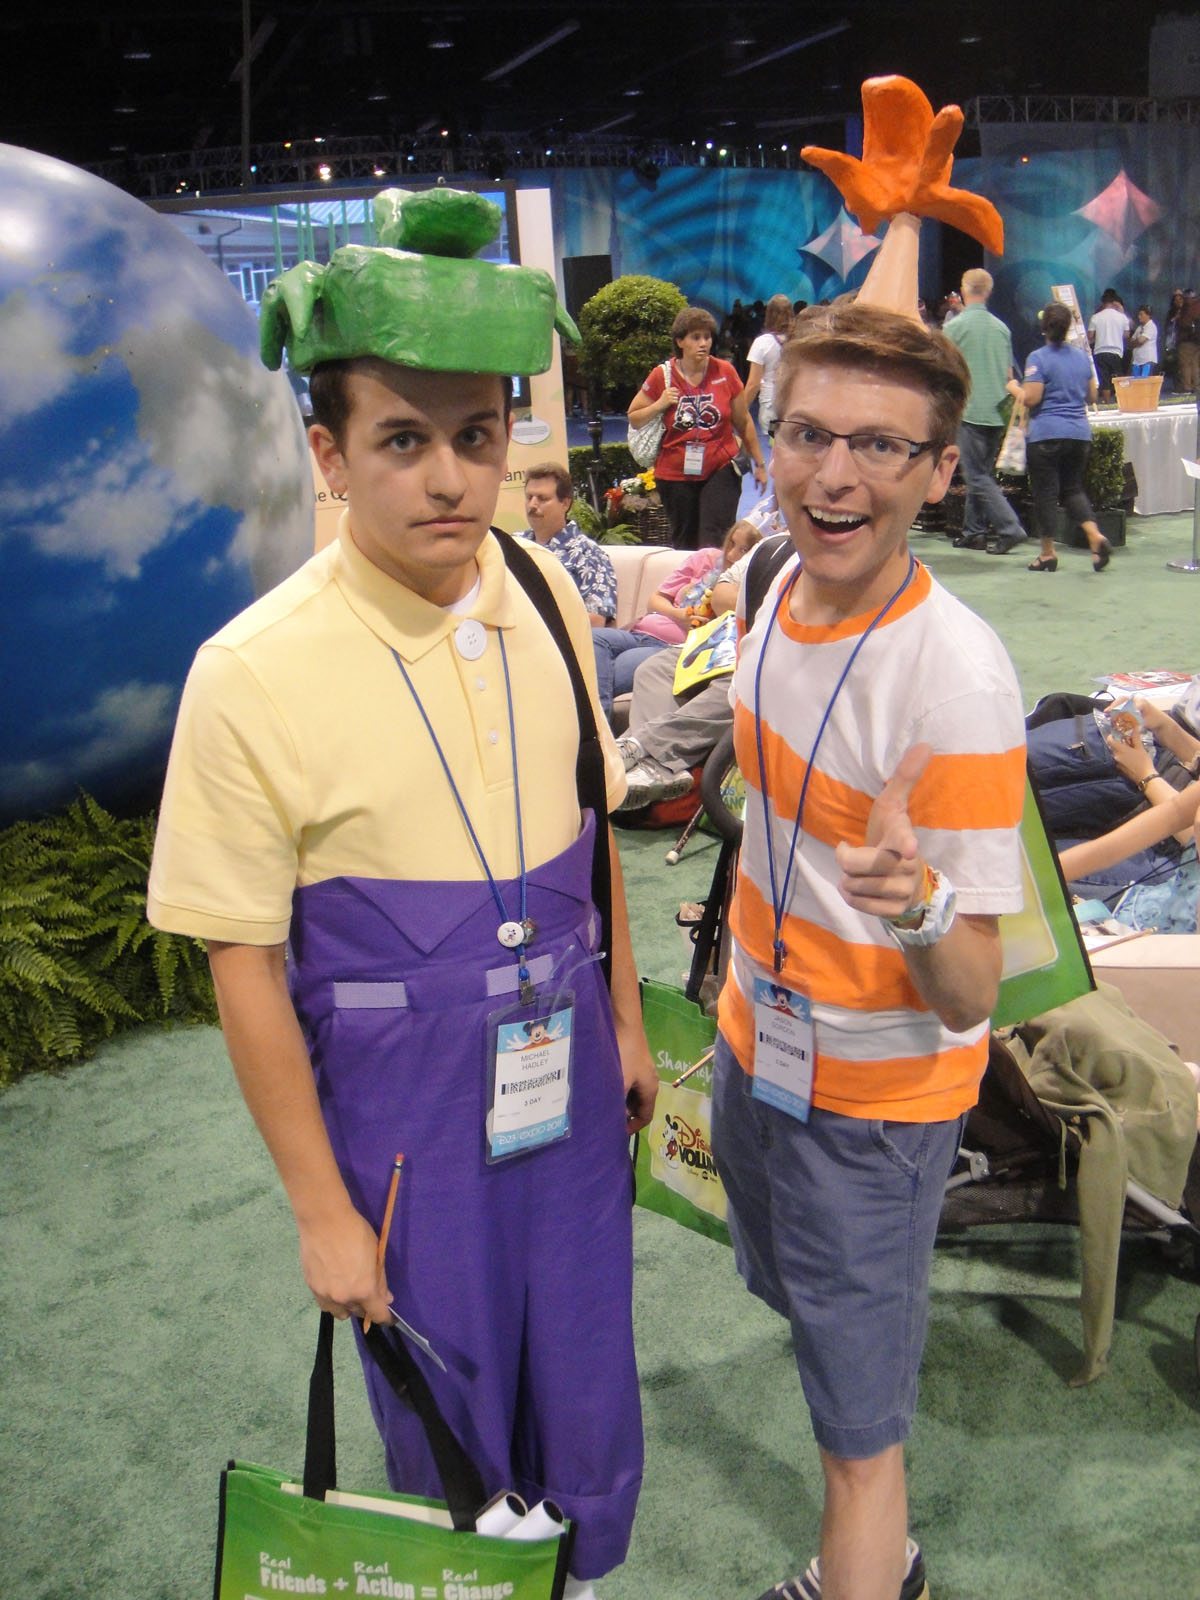 Phineas & Ferb--Homemade Costume